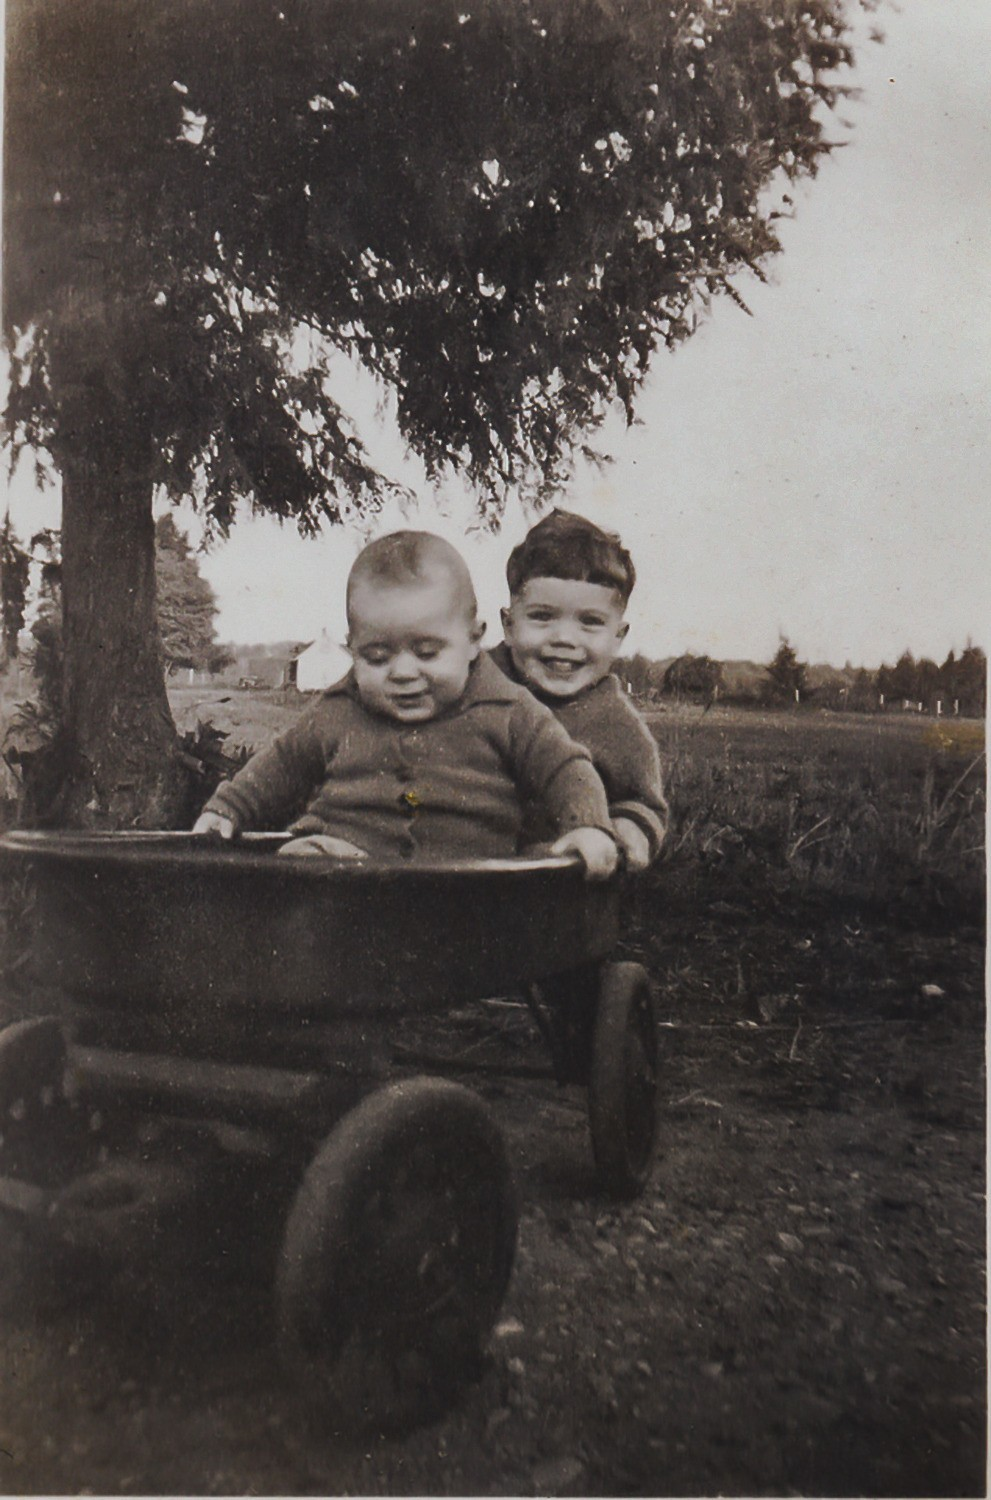 Leslie and David in Wagon